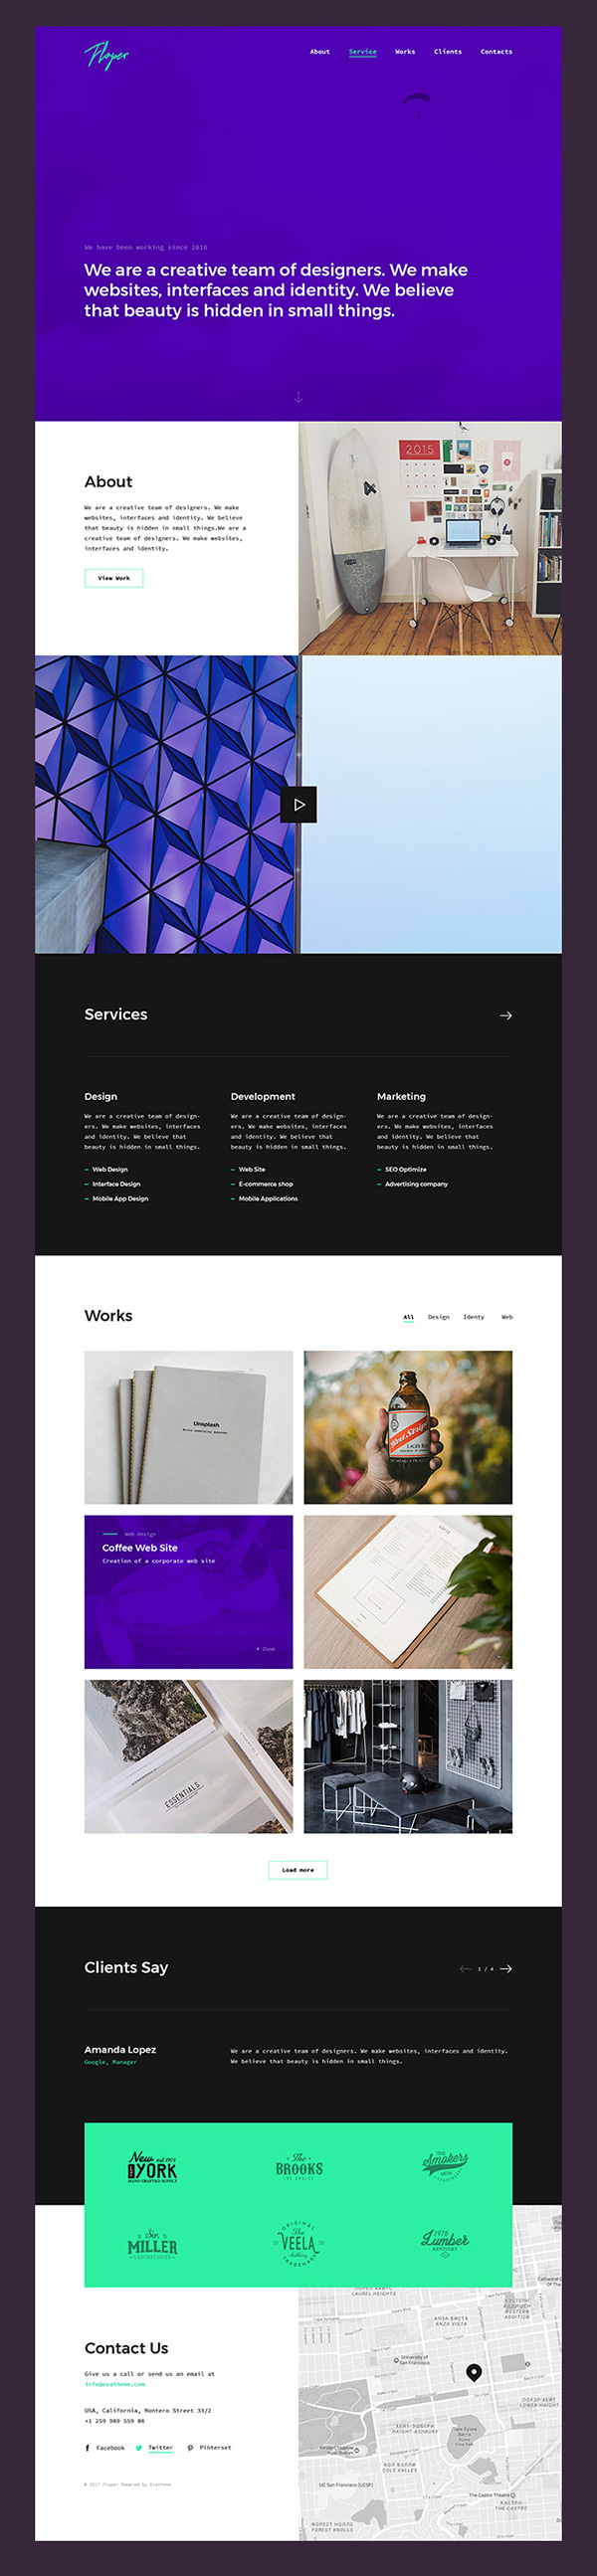 51 Free Bootstrap Themes Templates